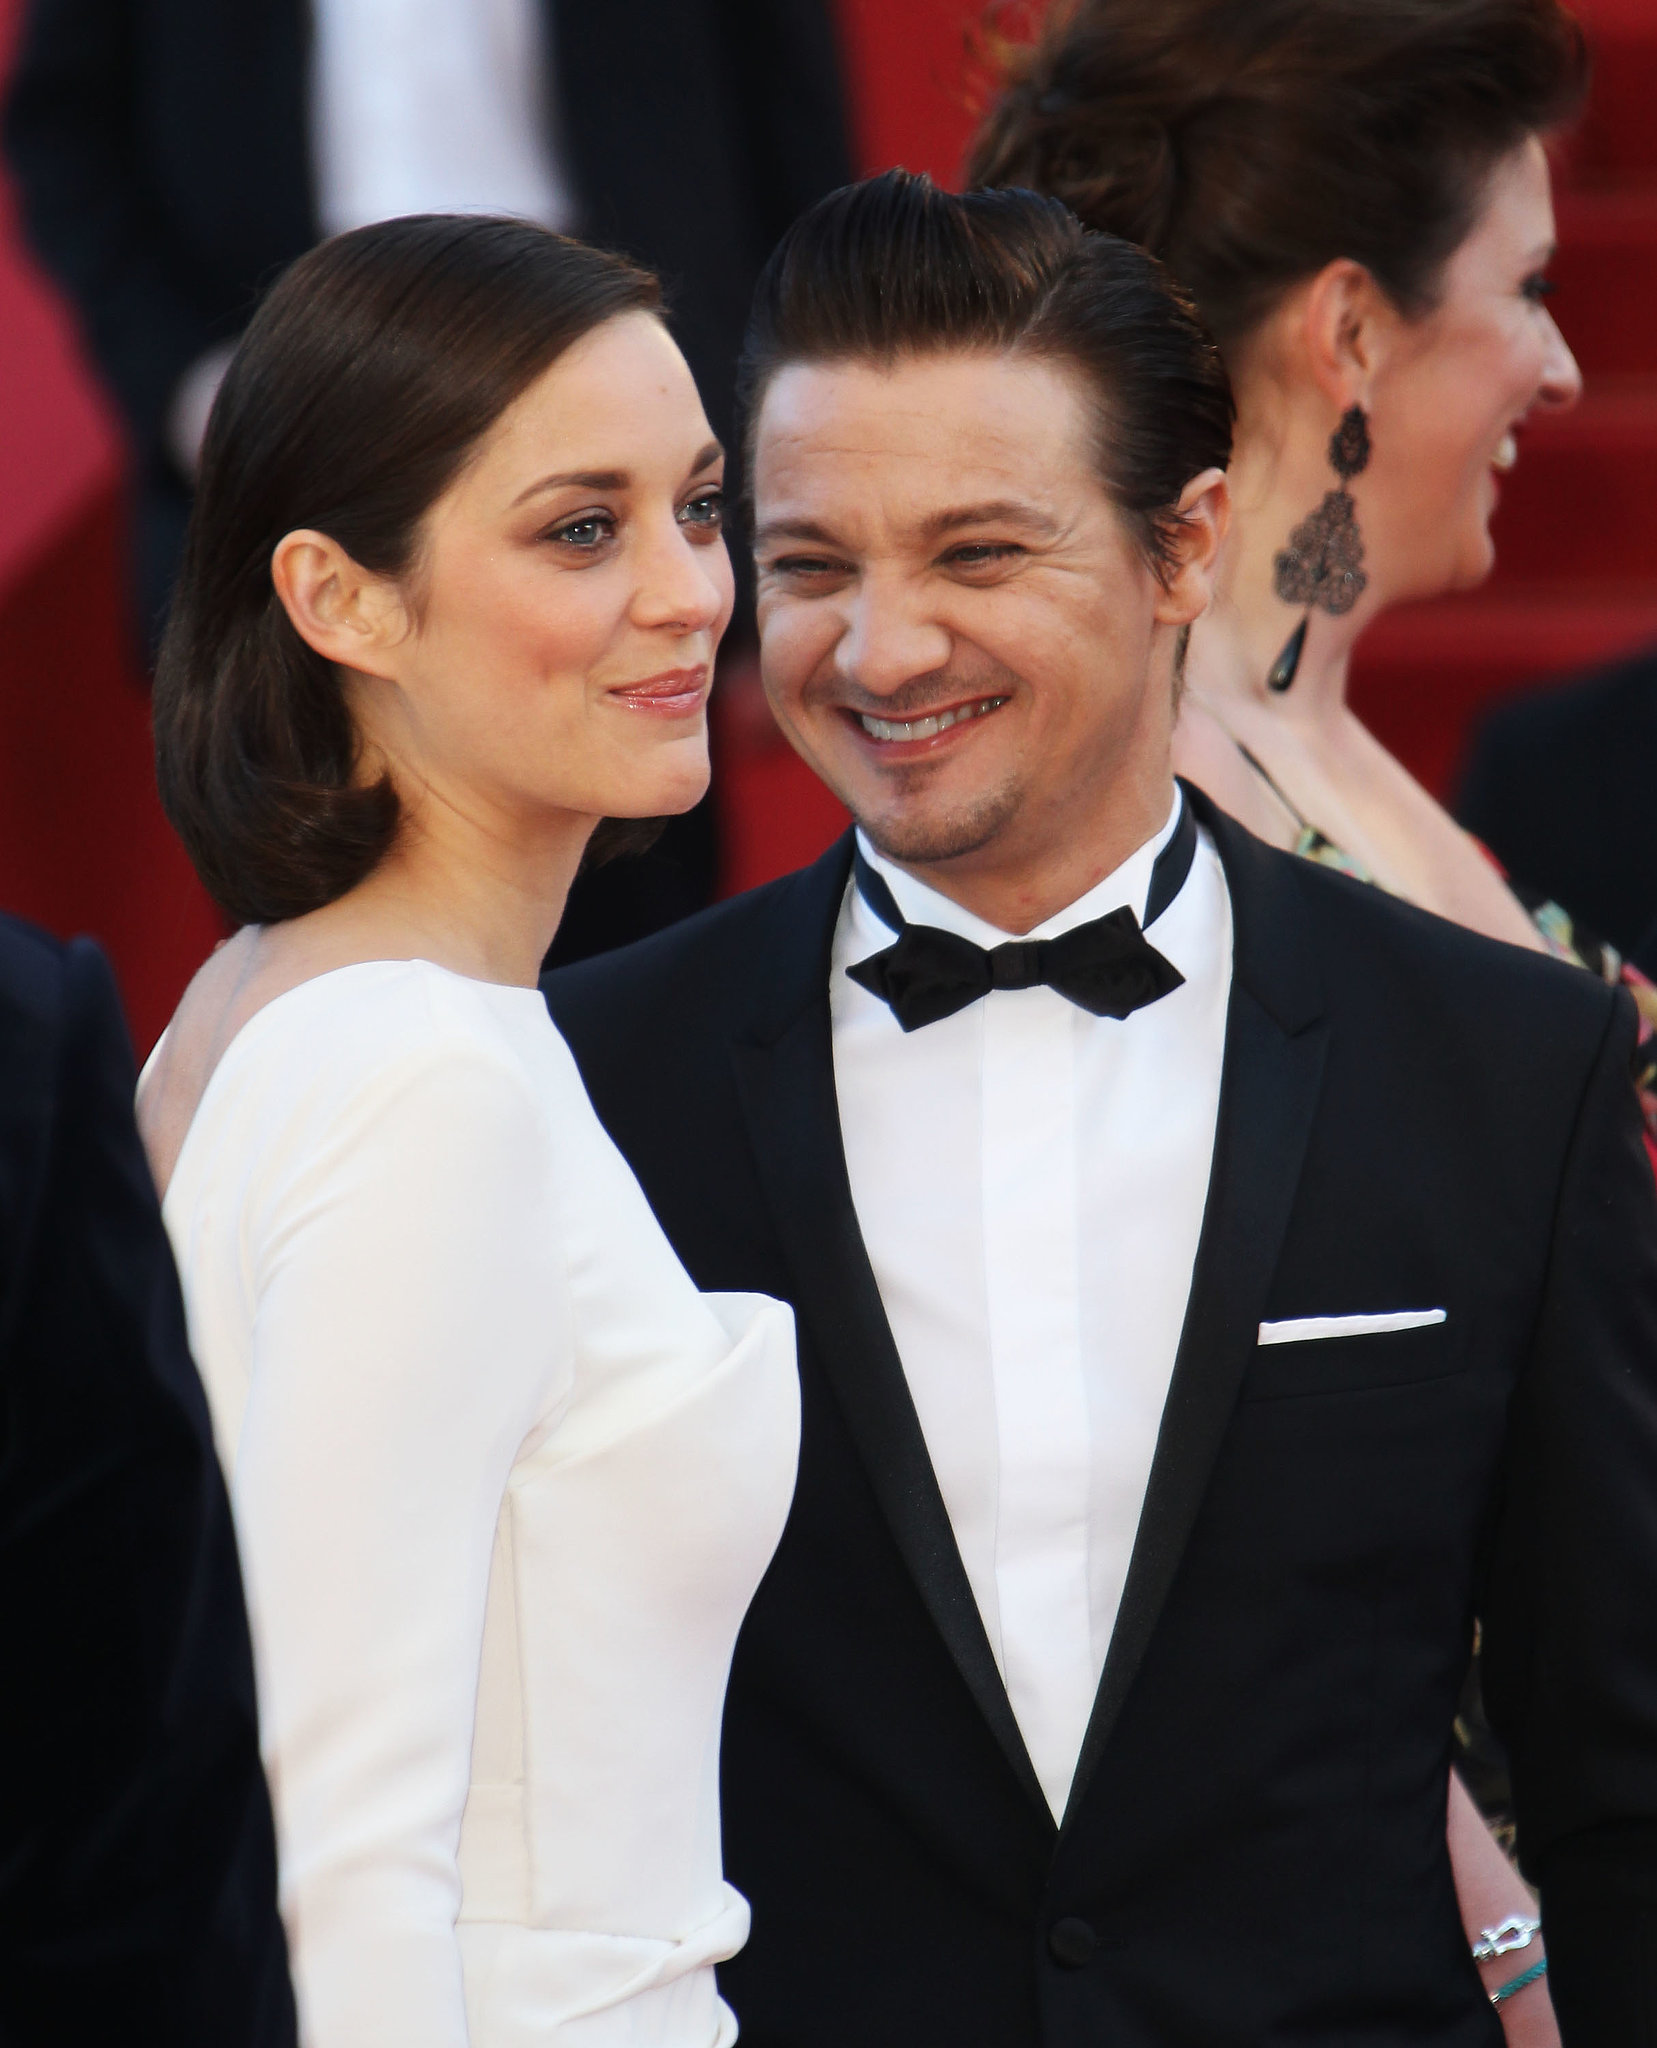 Jeremy Renner smiled at his costar Marion Cotillard at the premiere for The Immigrant on Friday.